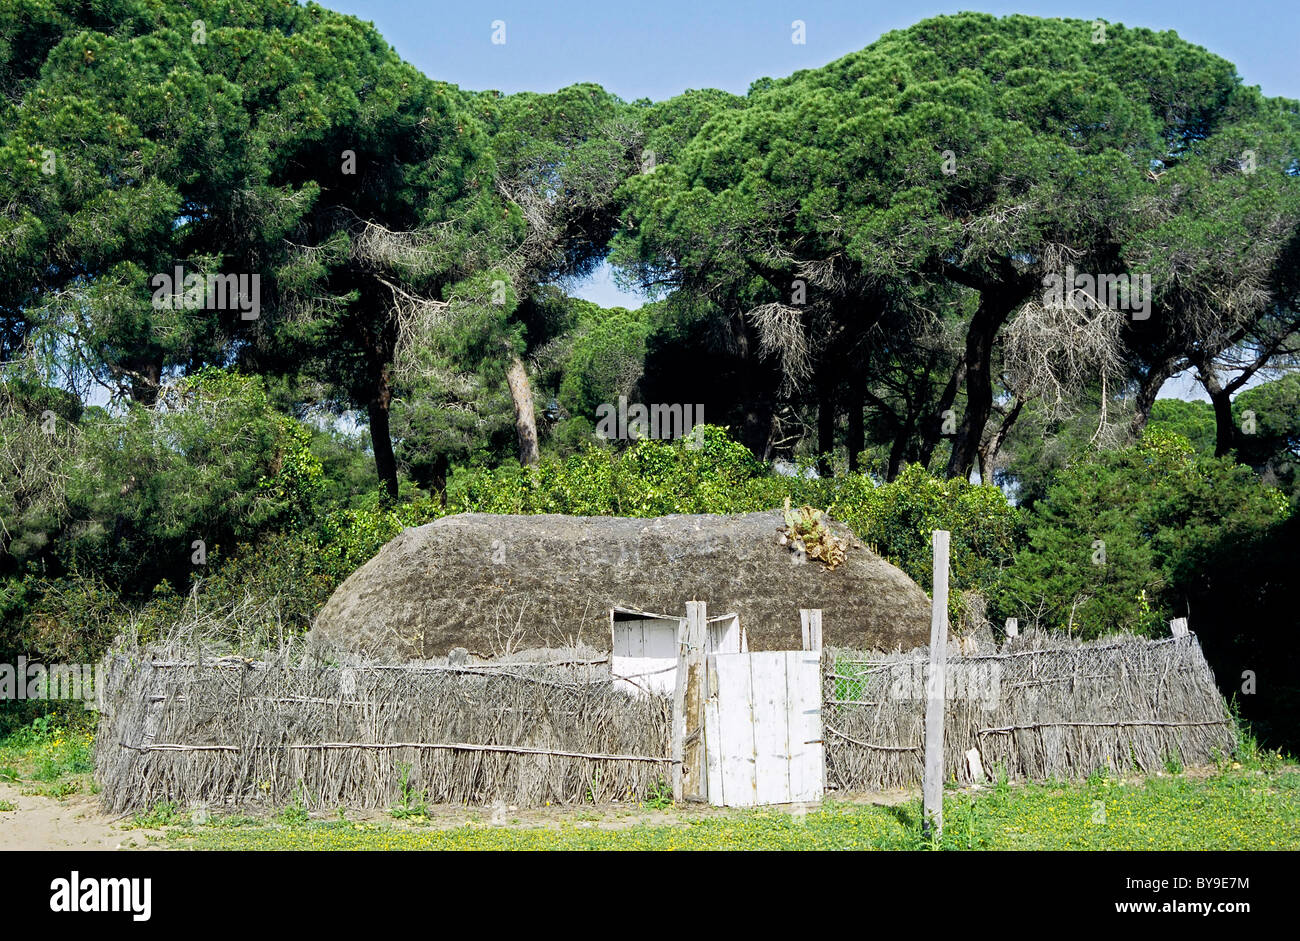 Primitive hut in the nature park of Coto de Doñana, reconstruction of a typical village of the Marisma, Guadalquivir - Stock Image